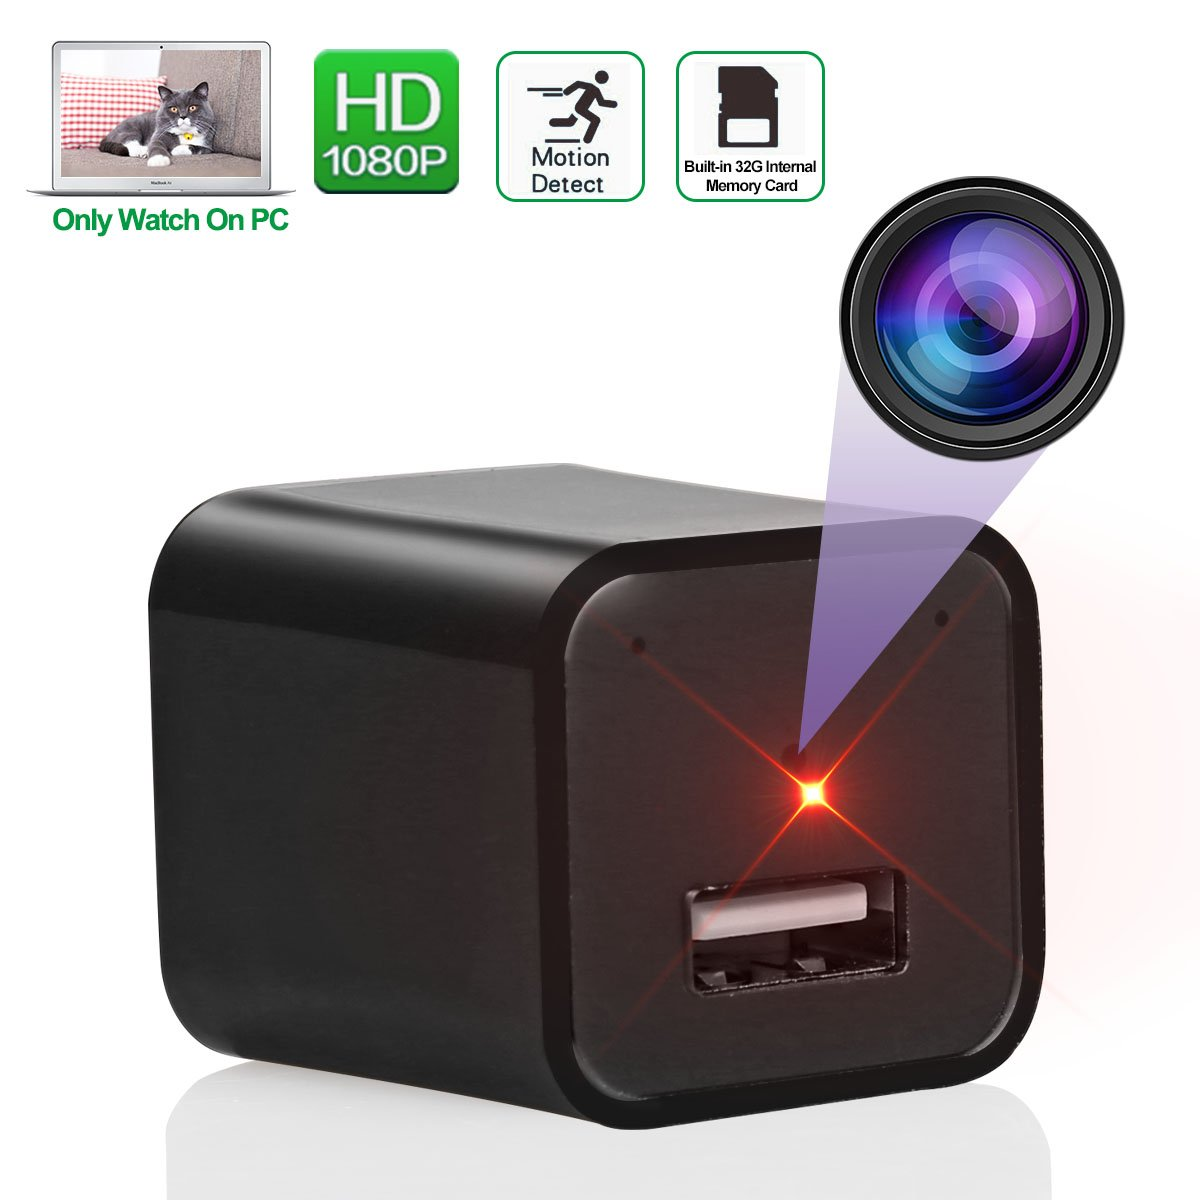 Spy Camera Wireless Hidden, Mini Hidden Spy Camera Adapter HD 1080P Motion Detection with 32GB Internal Memory Card for Home Office Security